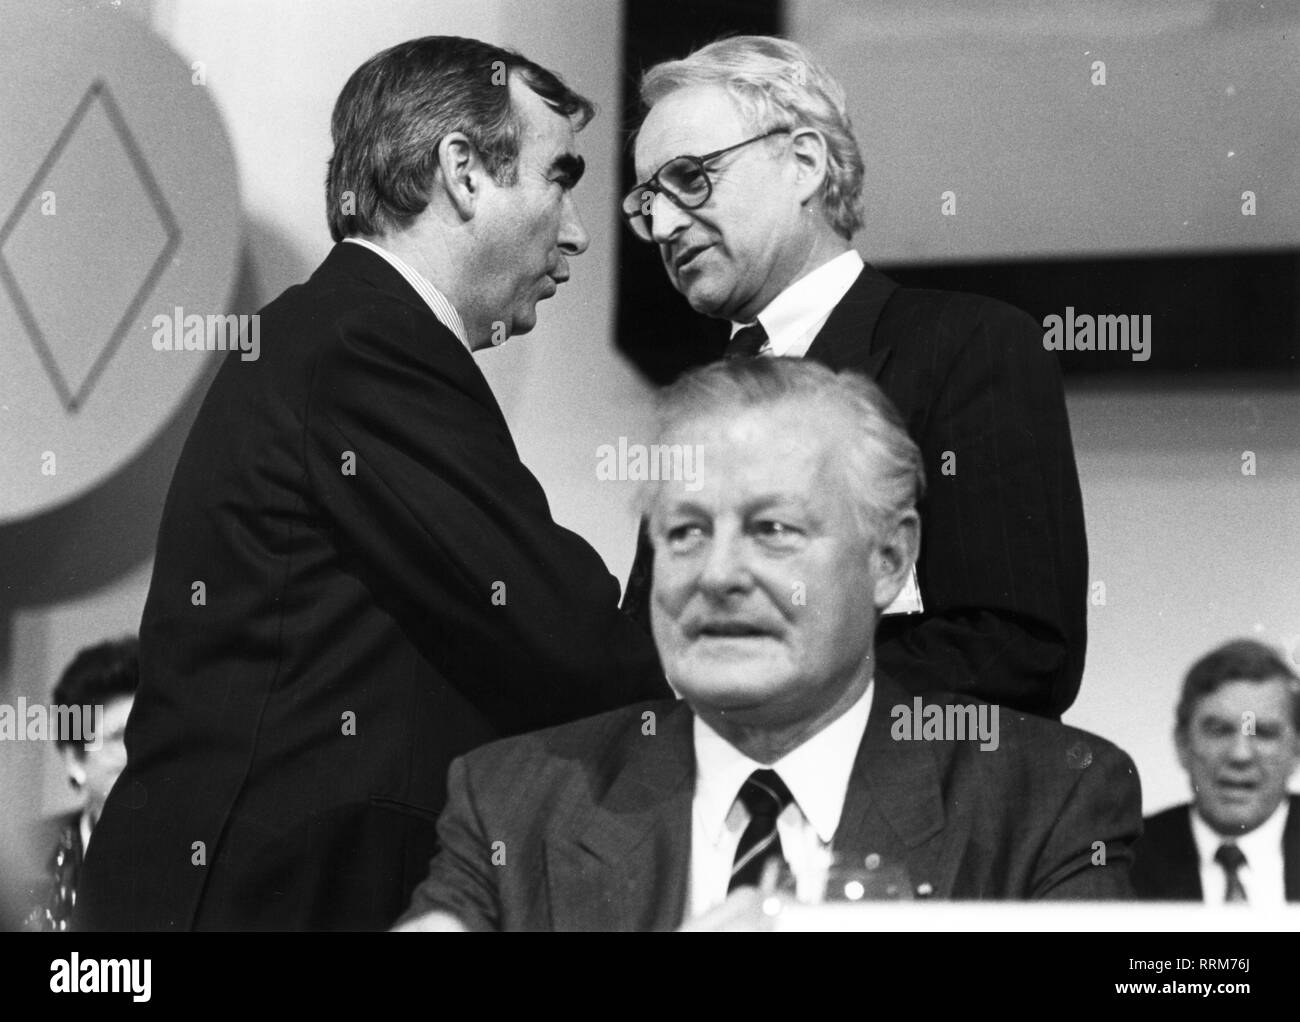 Waigel, 'Theo', * 22.4.1939, German politician (Christian Social Union), Federal Minister of Finance, 21.4.1989 - 26.10.1998, half-length, with Edmund Stoiber and Max Streibl, 1992, Additional-Rights-Clearance-Info-Not-Available - Stock Image